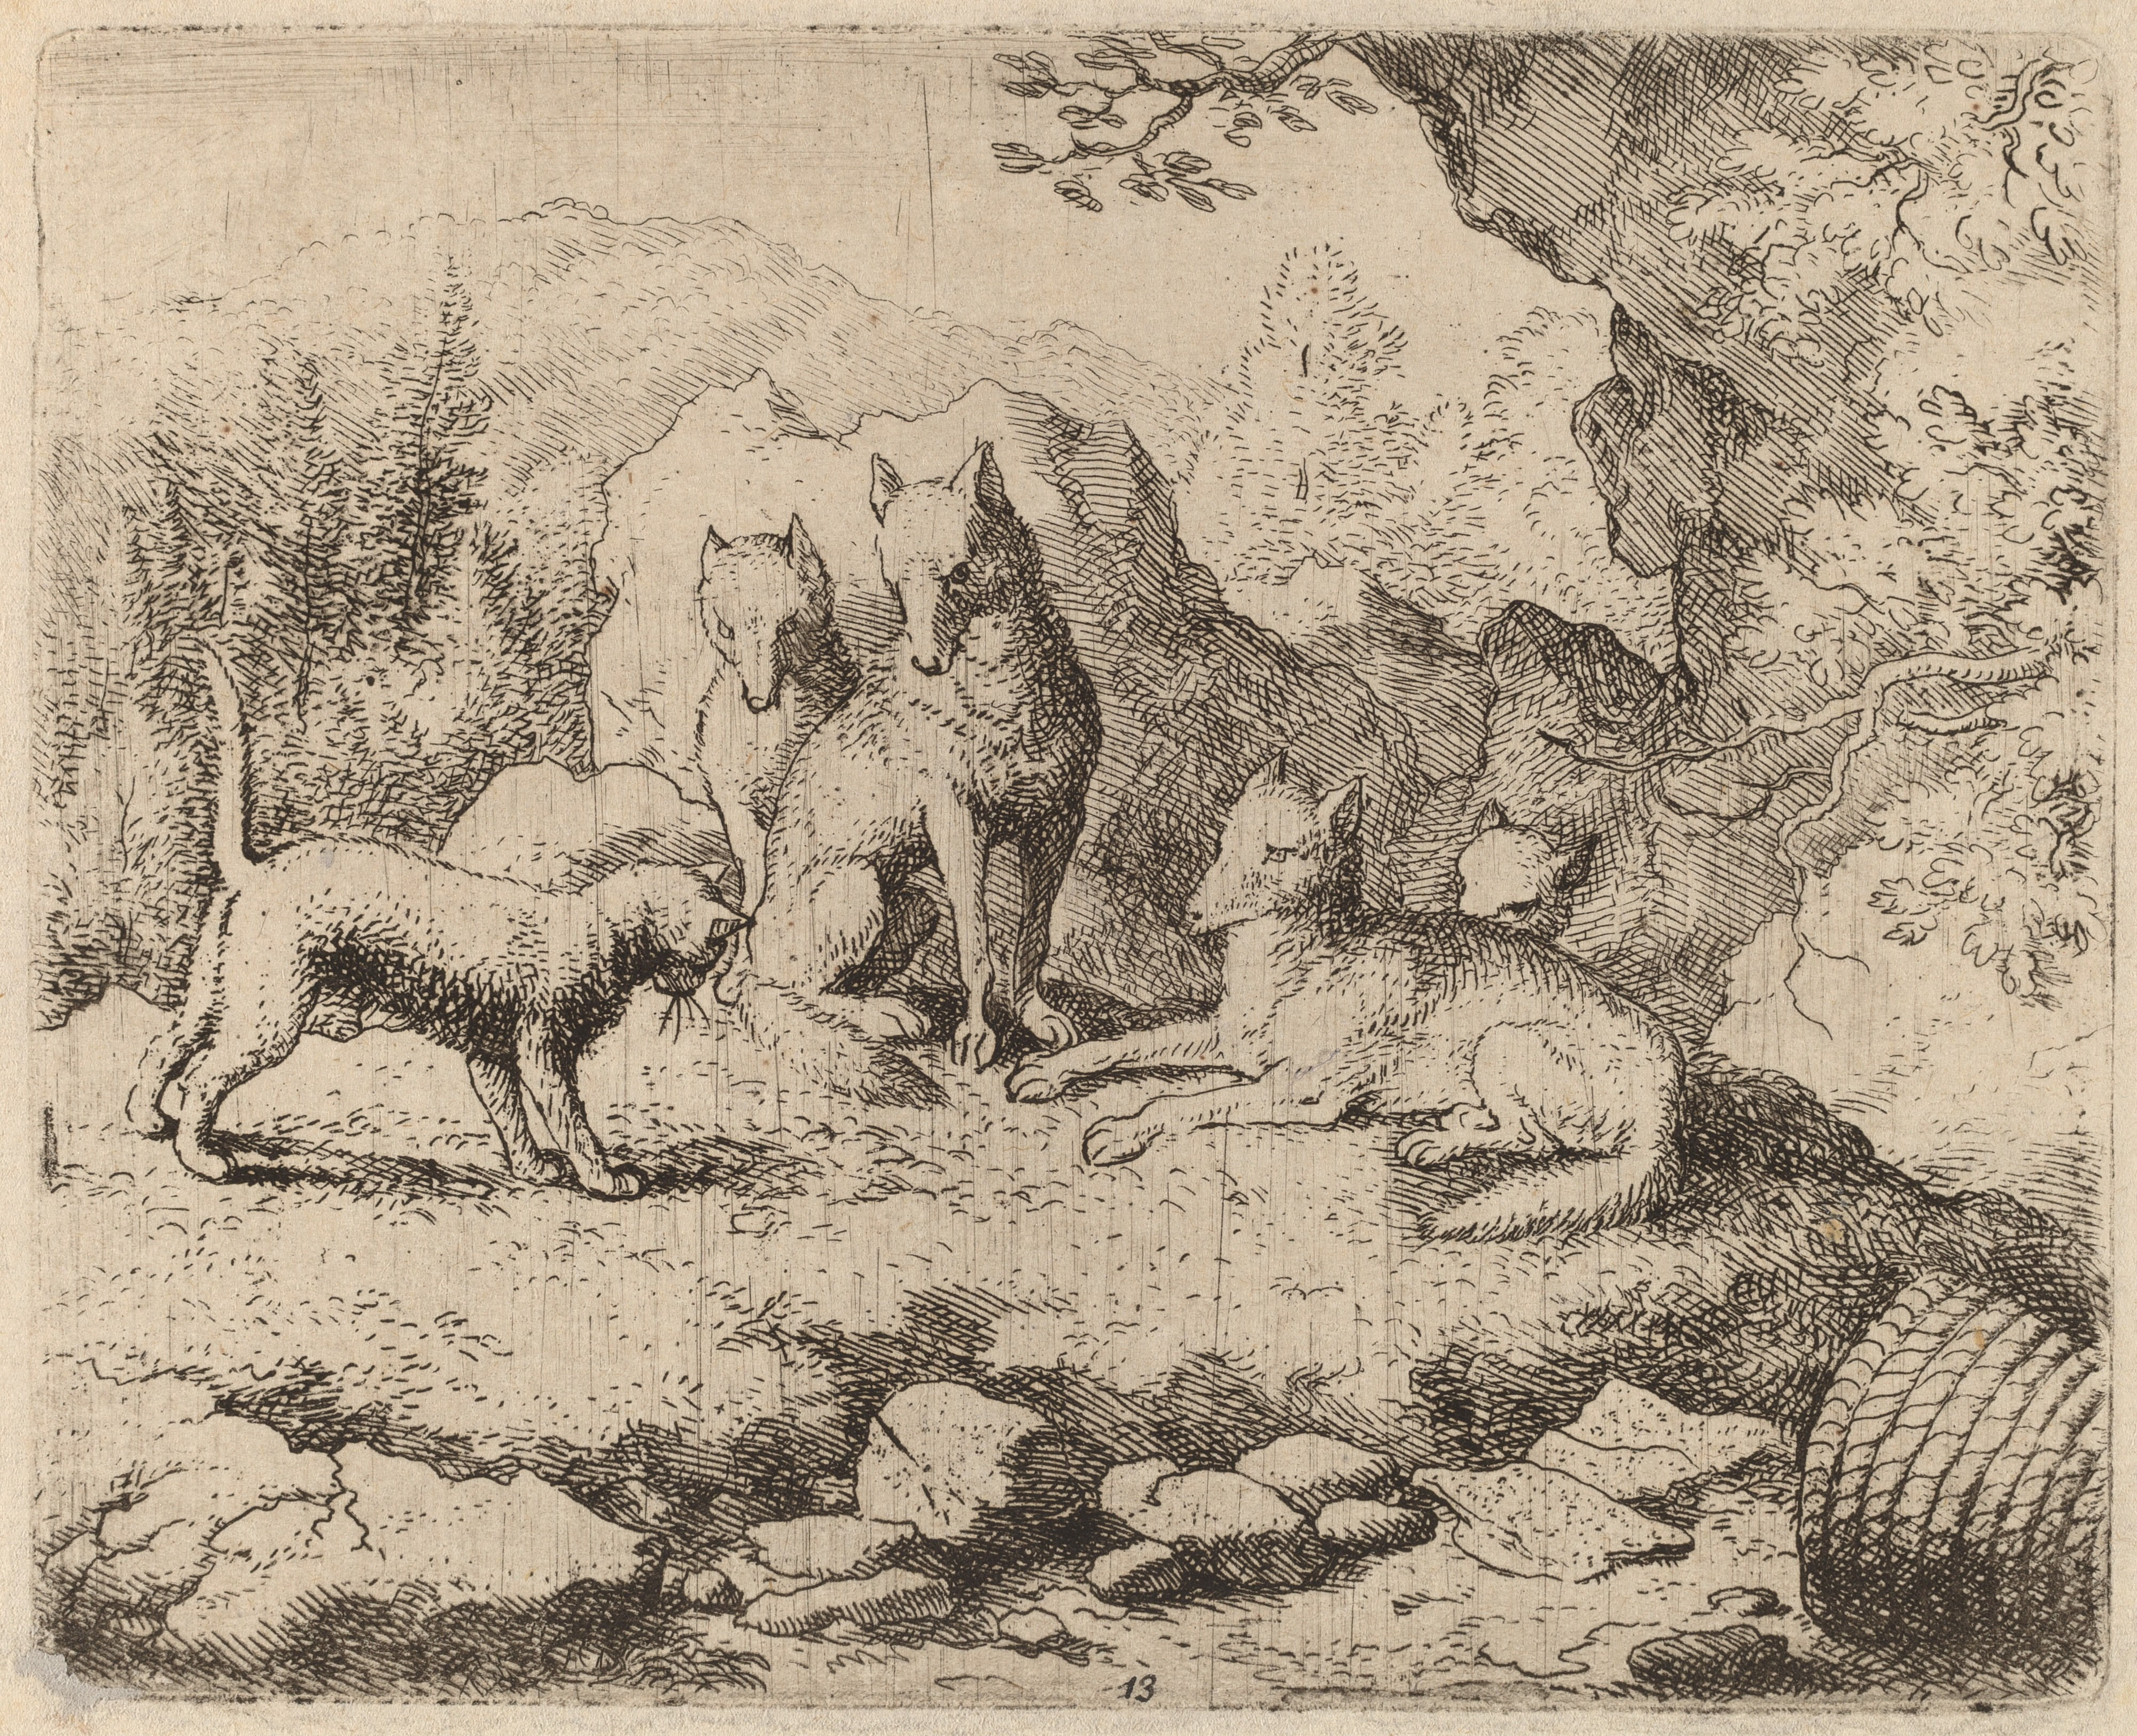 Etching of a cat sent as messenger to a pack of wolves.